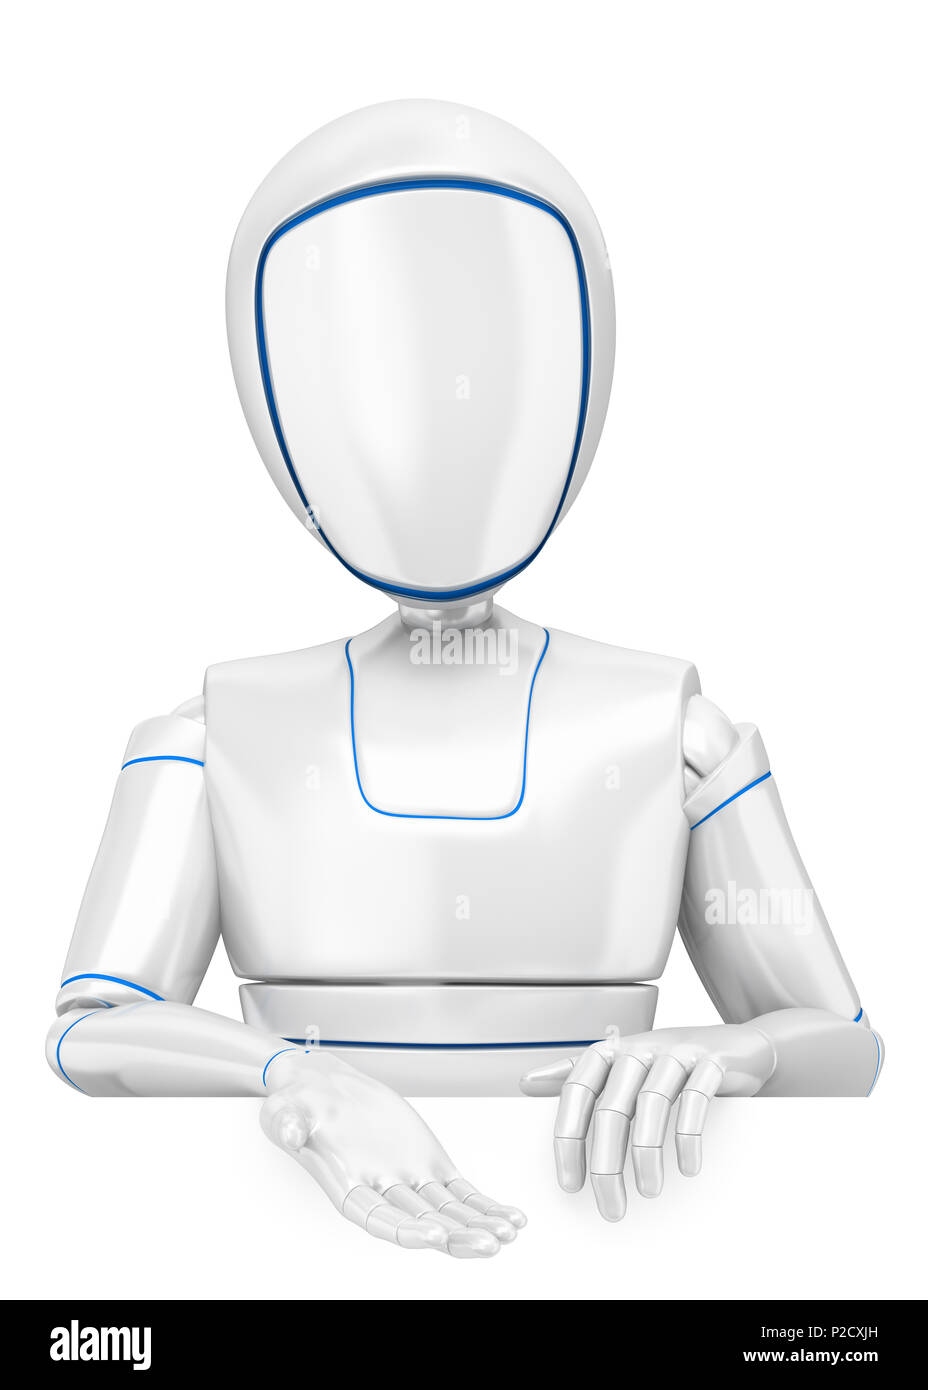 3d futuristic android illustration. Humanoid robot pointing down. Isolated white background. - Stock Image